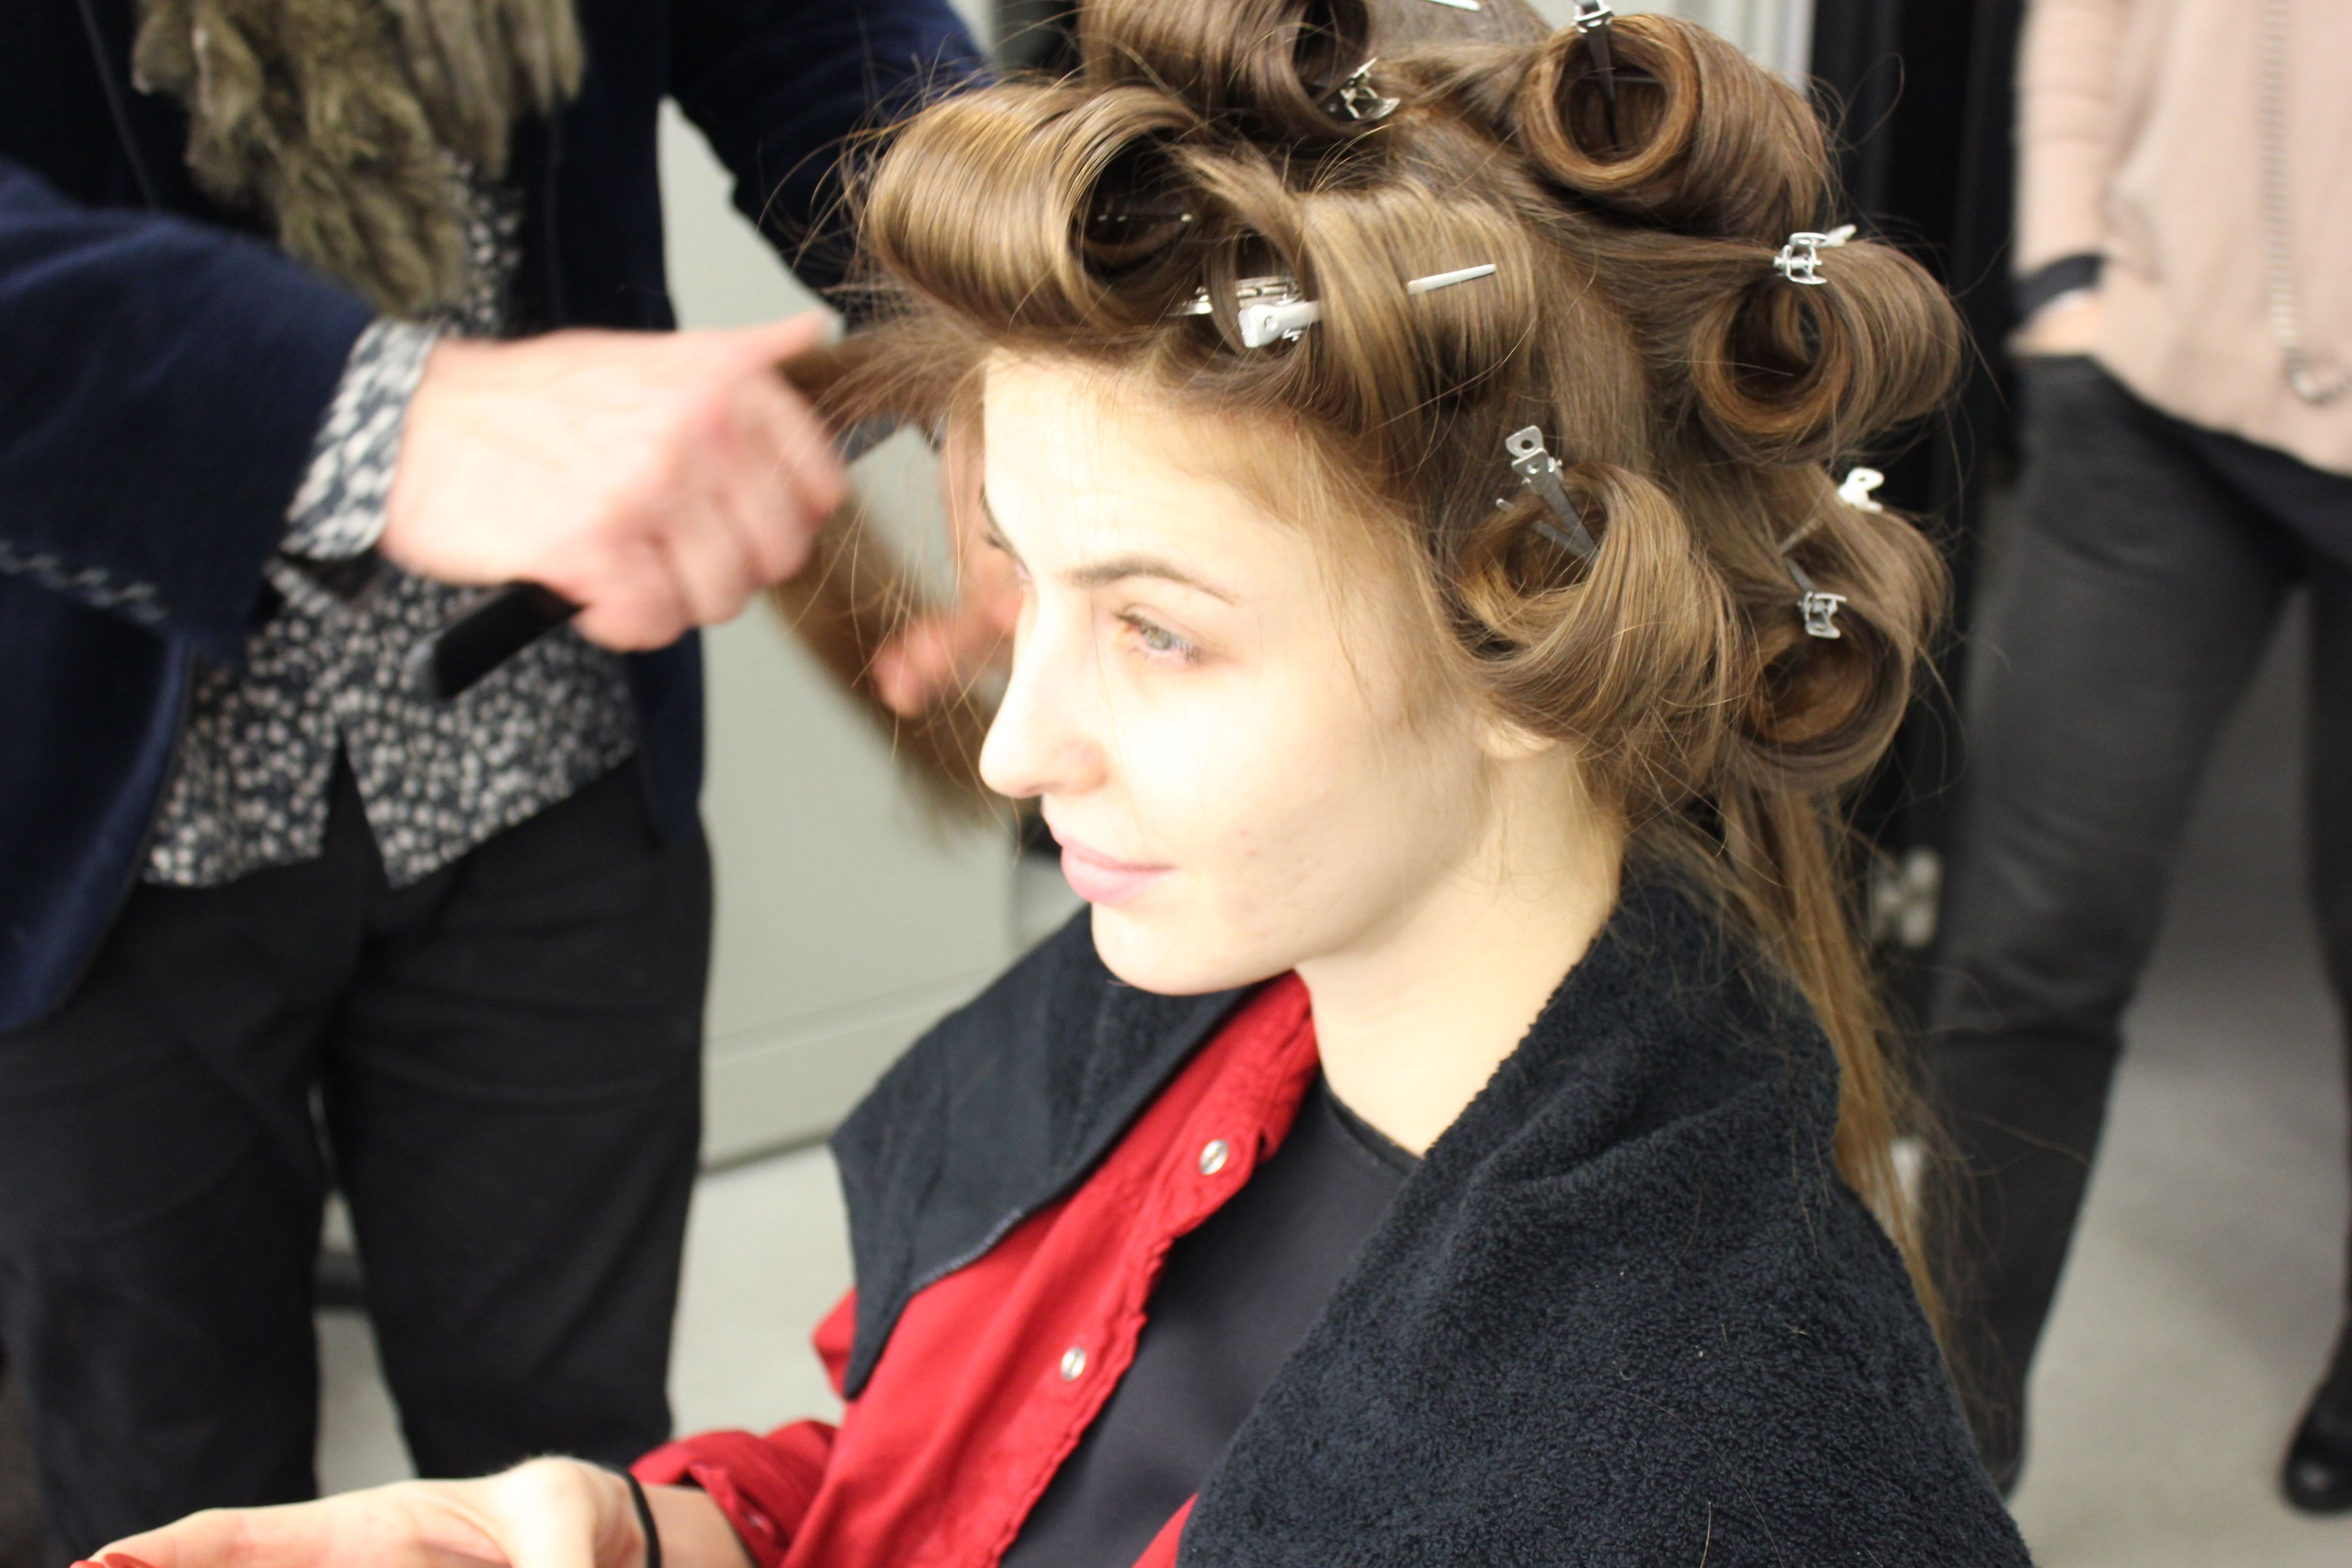 FRAMCOLOR COLLECTION 2001 - Backstage